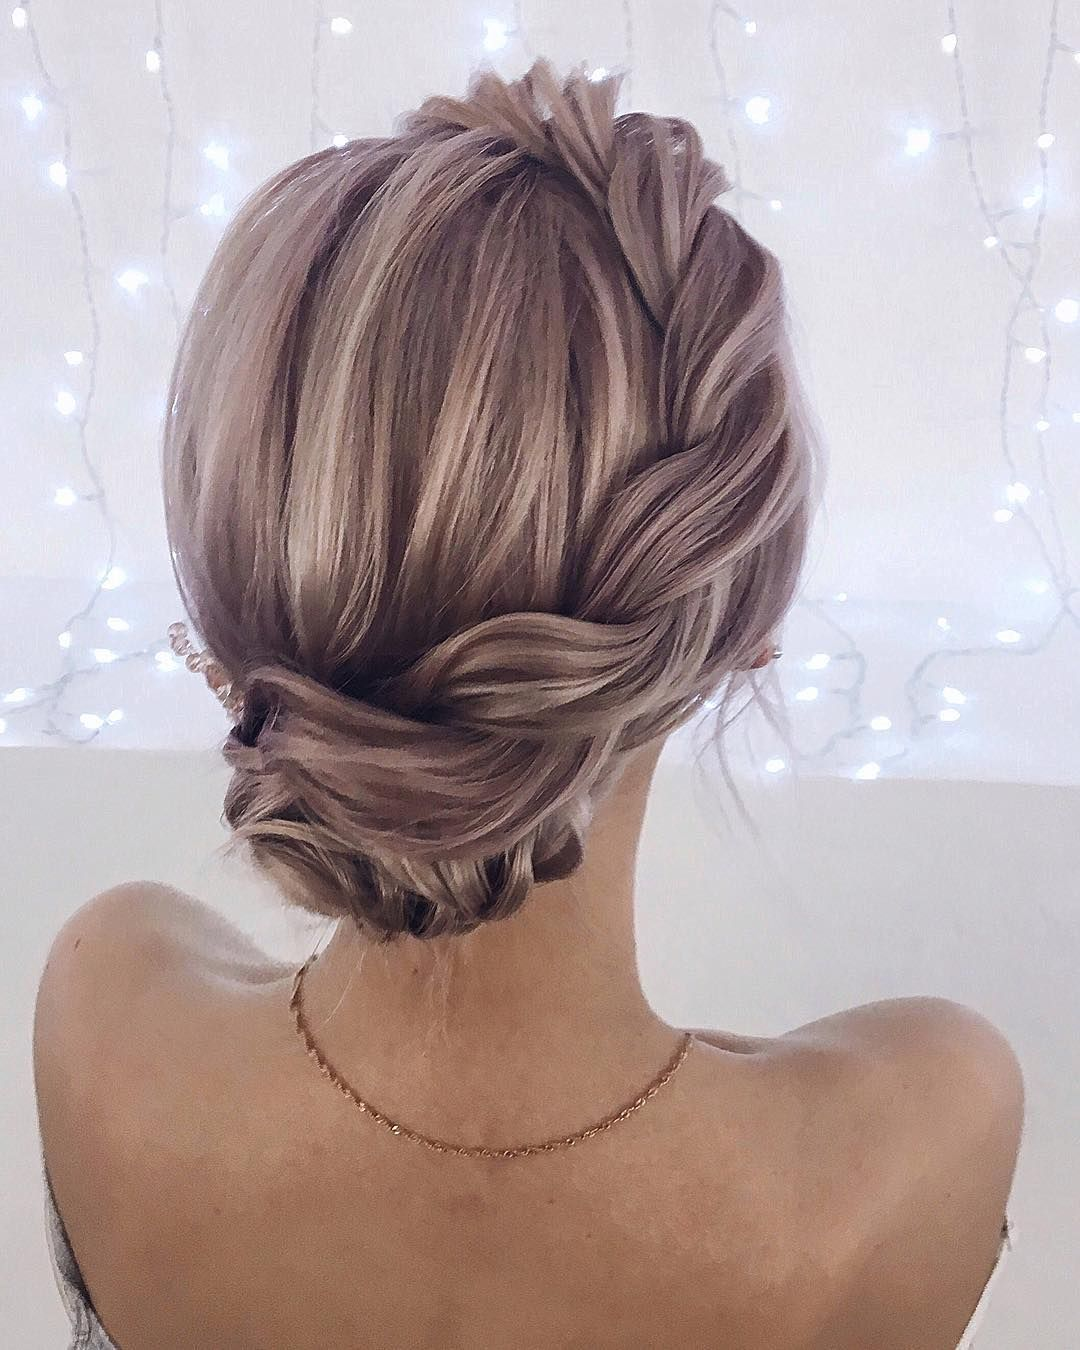 unique wedding hairstyle will never go out of style | haar